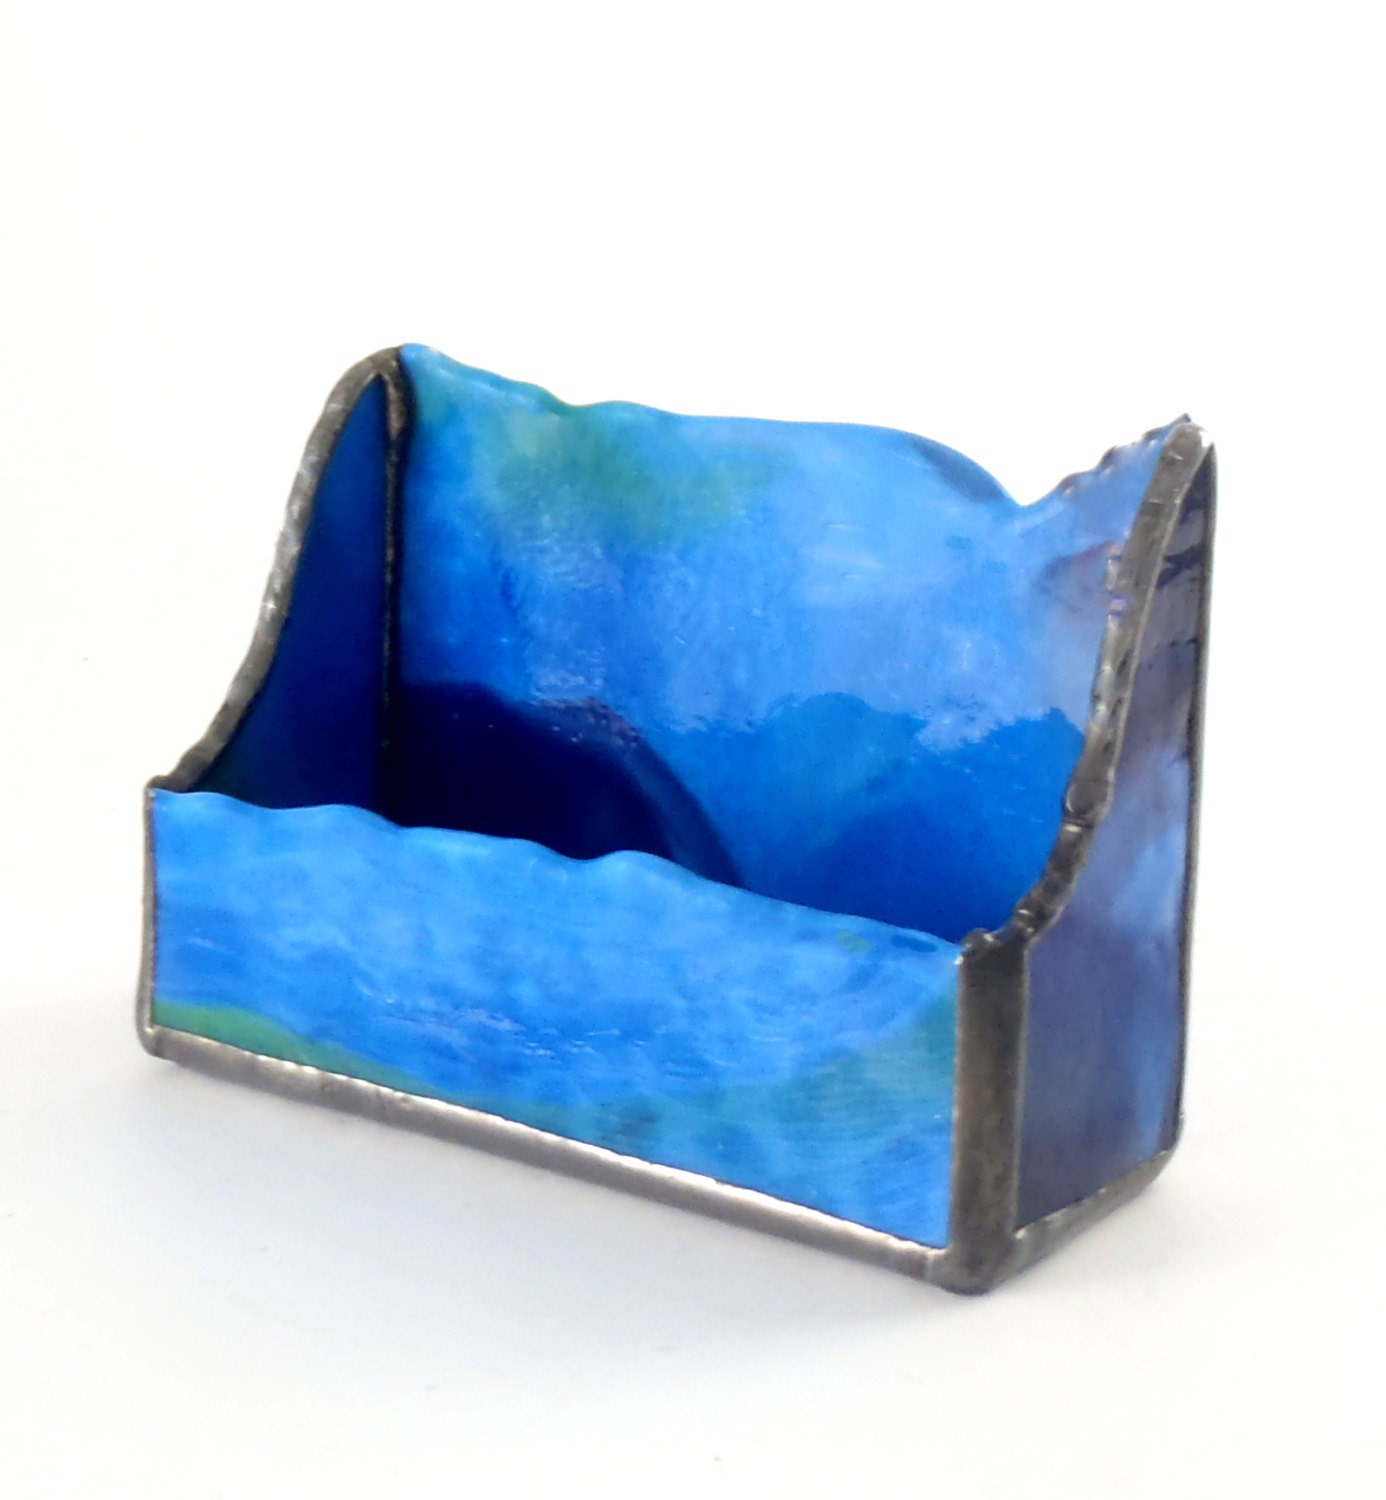 Unique Business Card Holder Desk Accessories Blue Stained